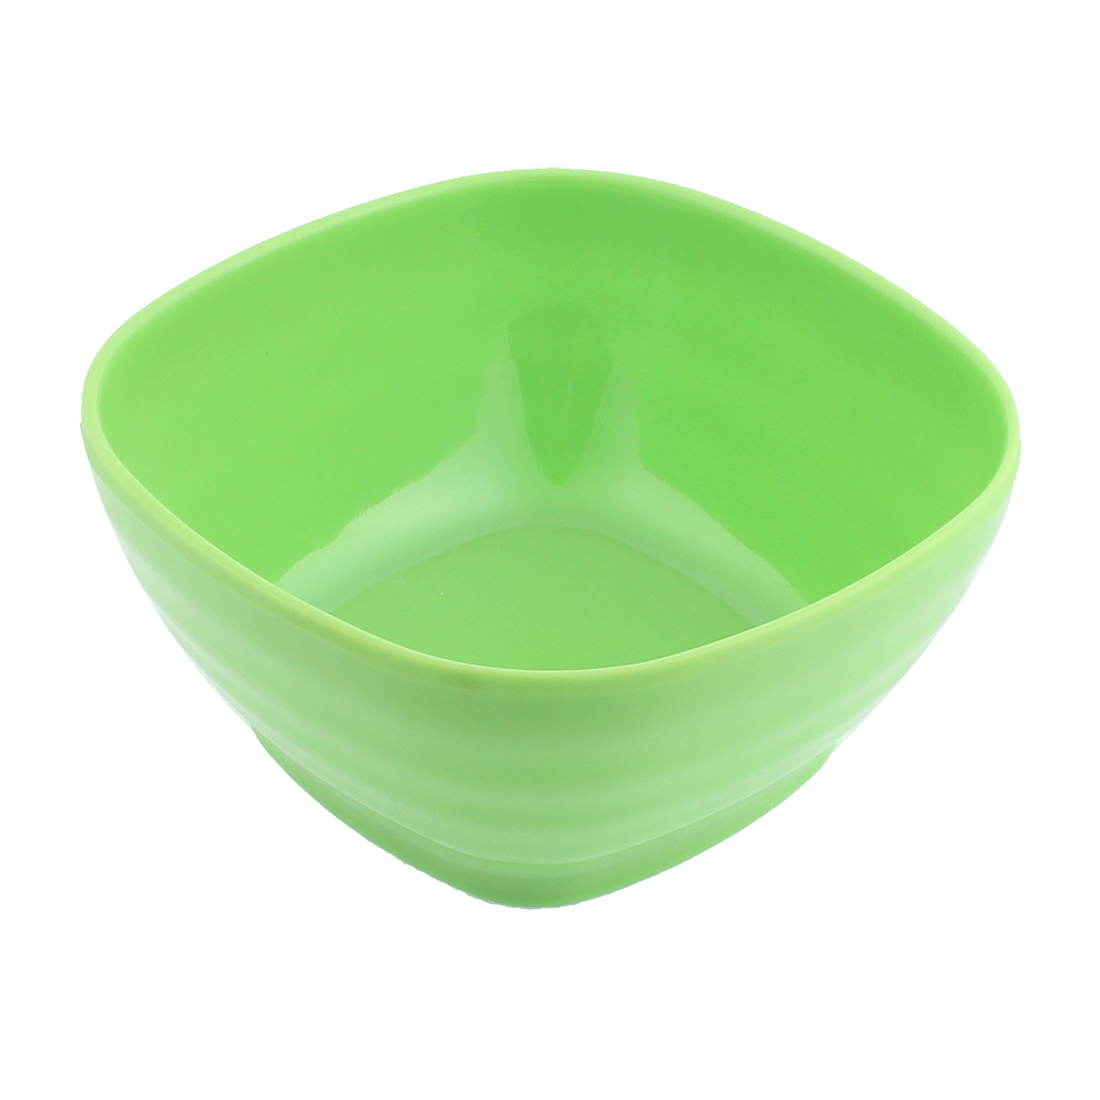 Plastic Square Design Soup Cereal Fruits Salad Bowl Green